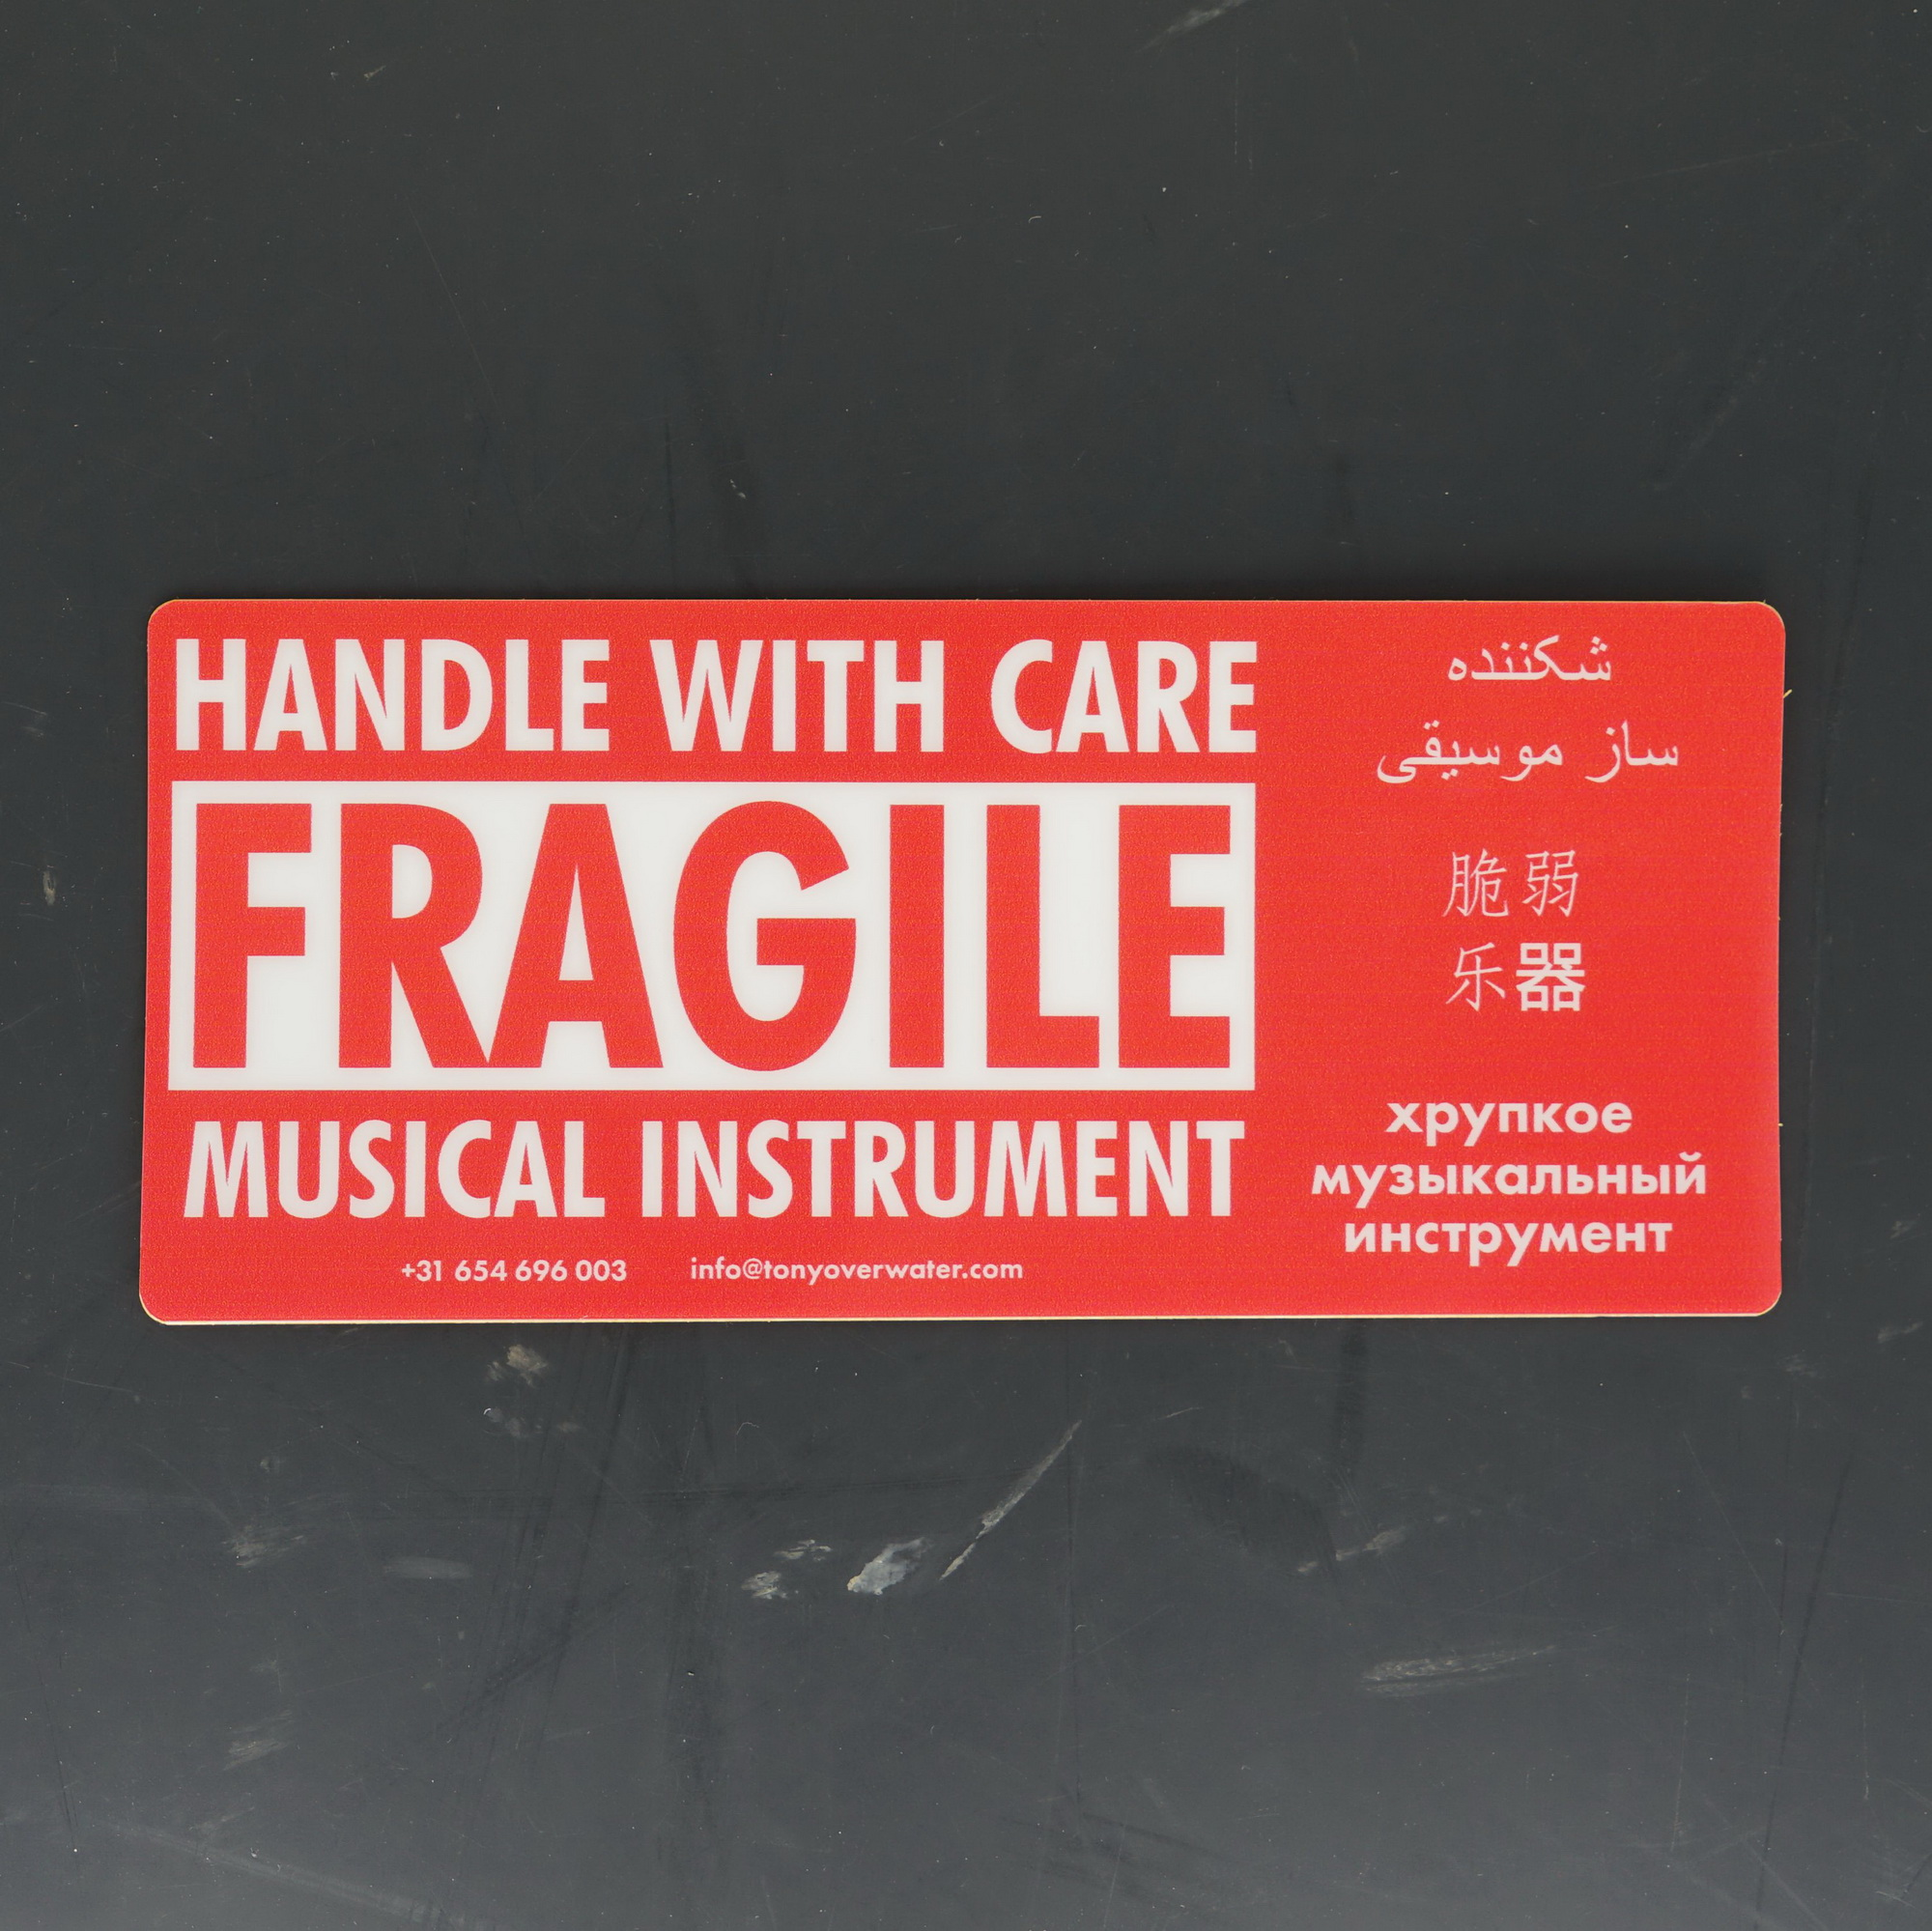 Flightcaselabels Caselabels Fragile - musical instrument